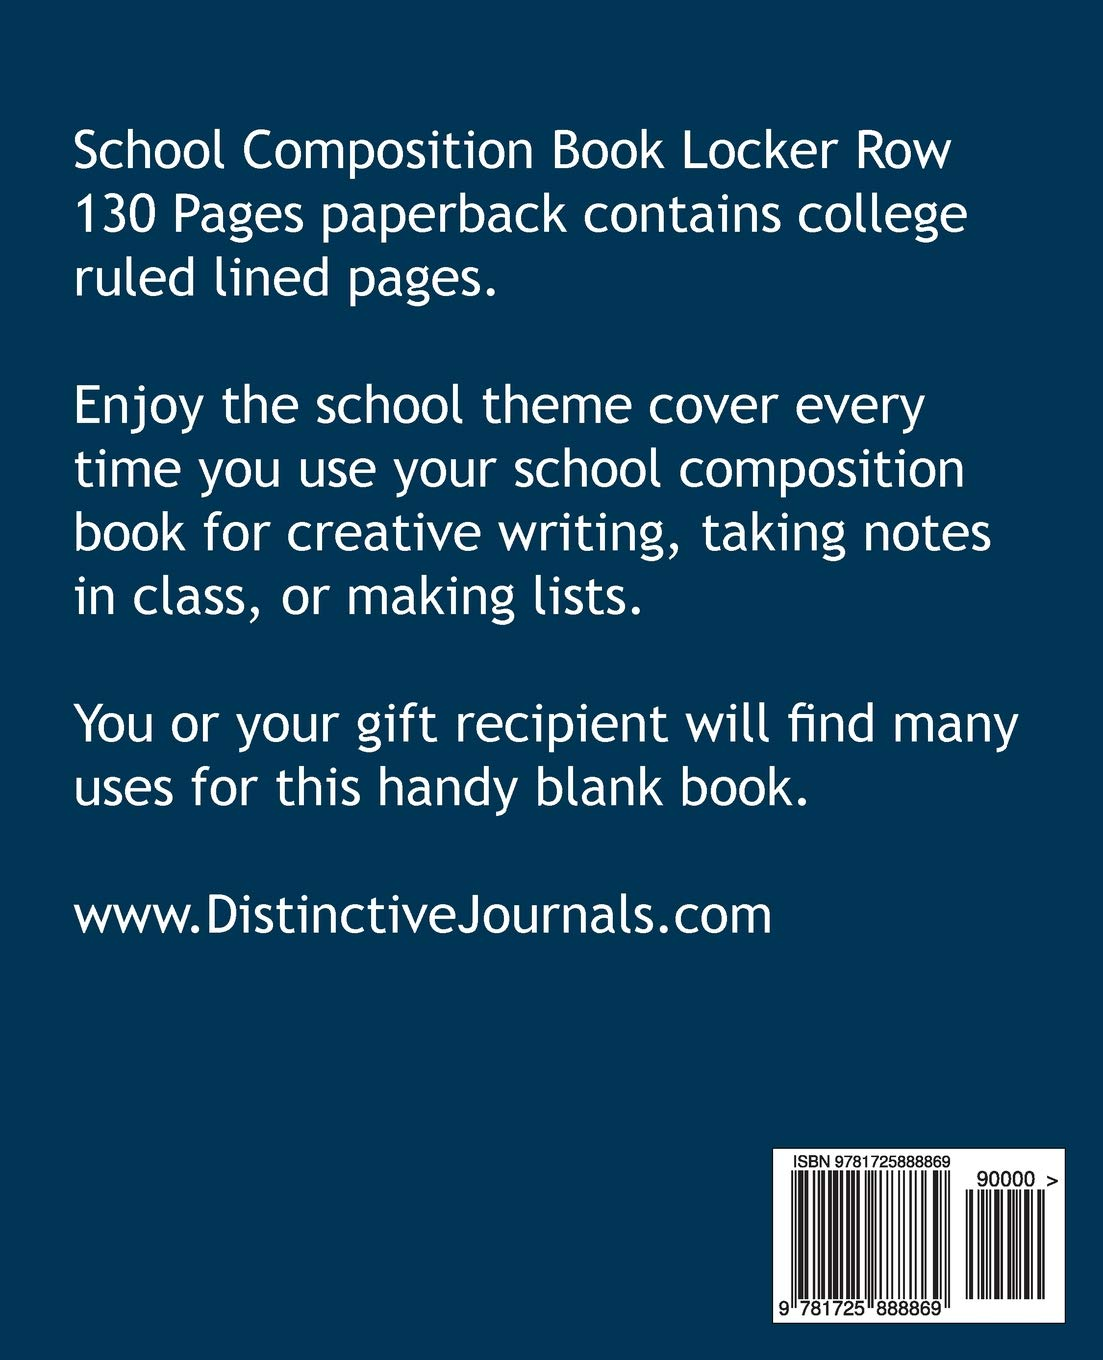 write a composition about your school